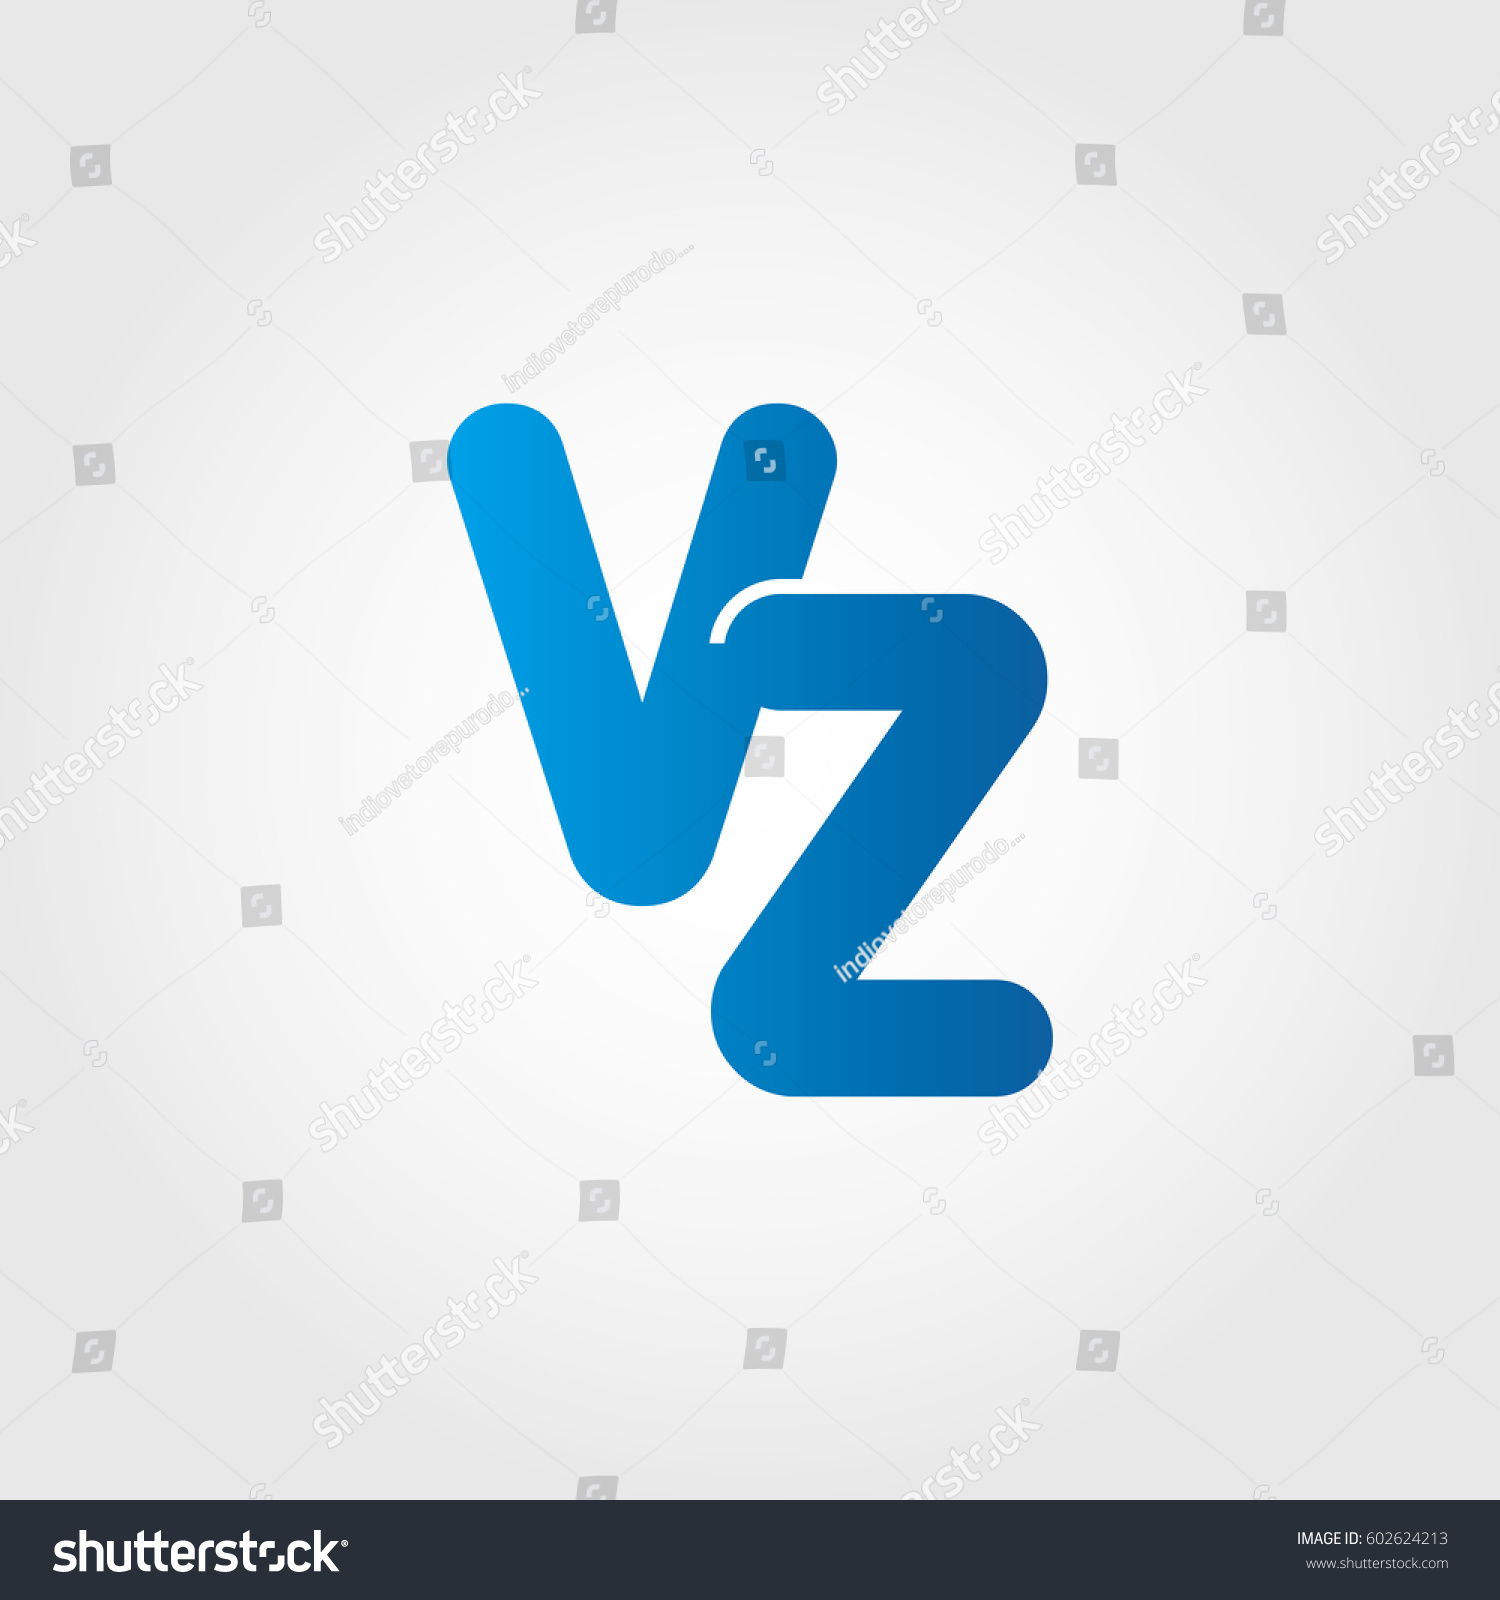 Logo letters vz blue stock vector 602624213 shutterstock logo letters vz blue biocorpaavc Image collections